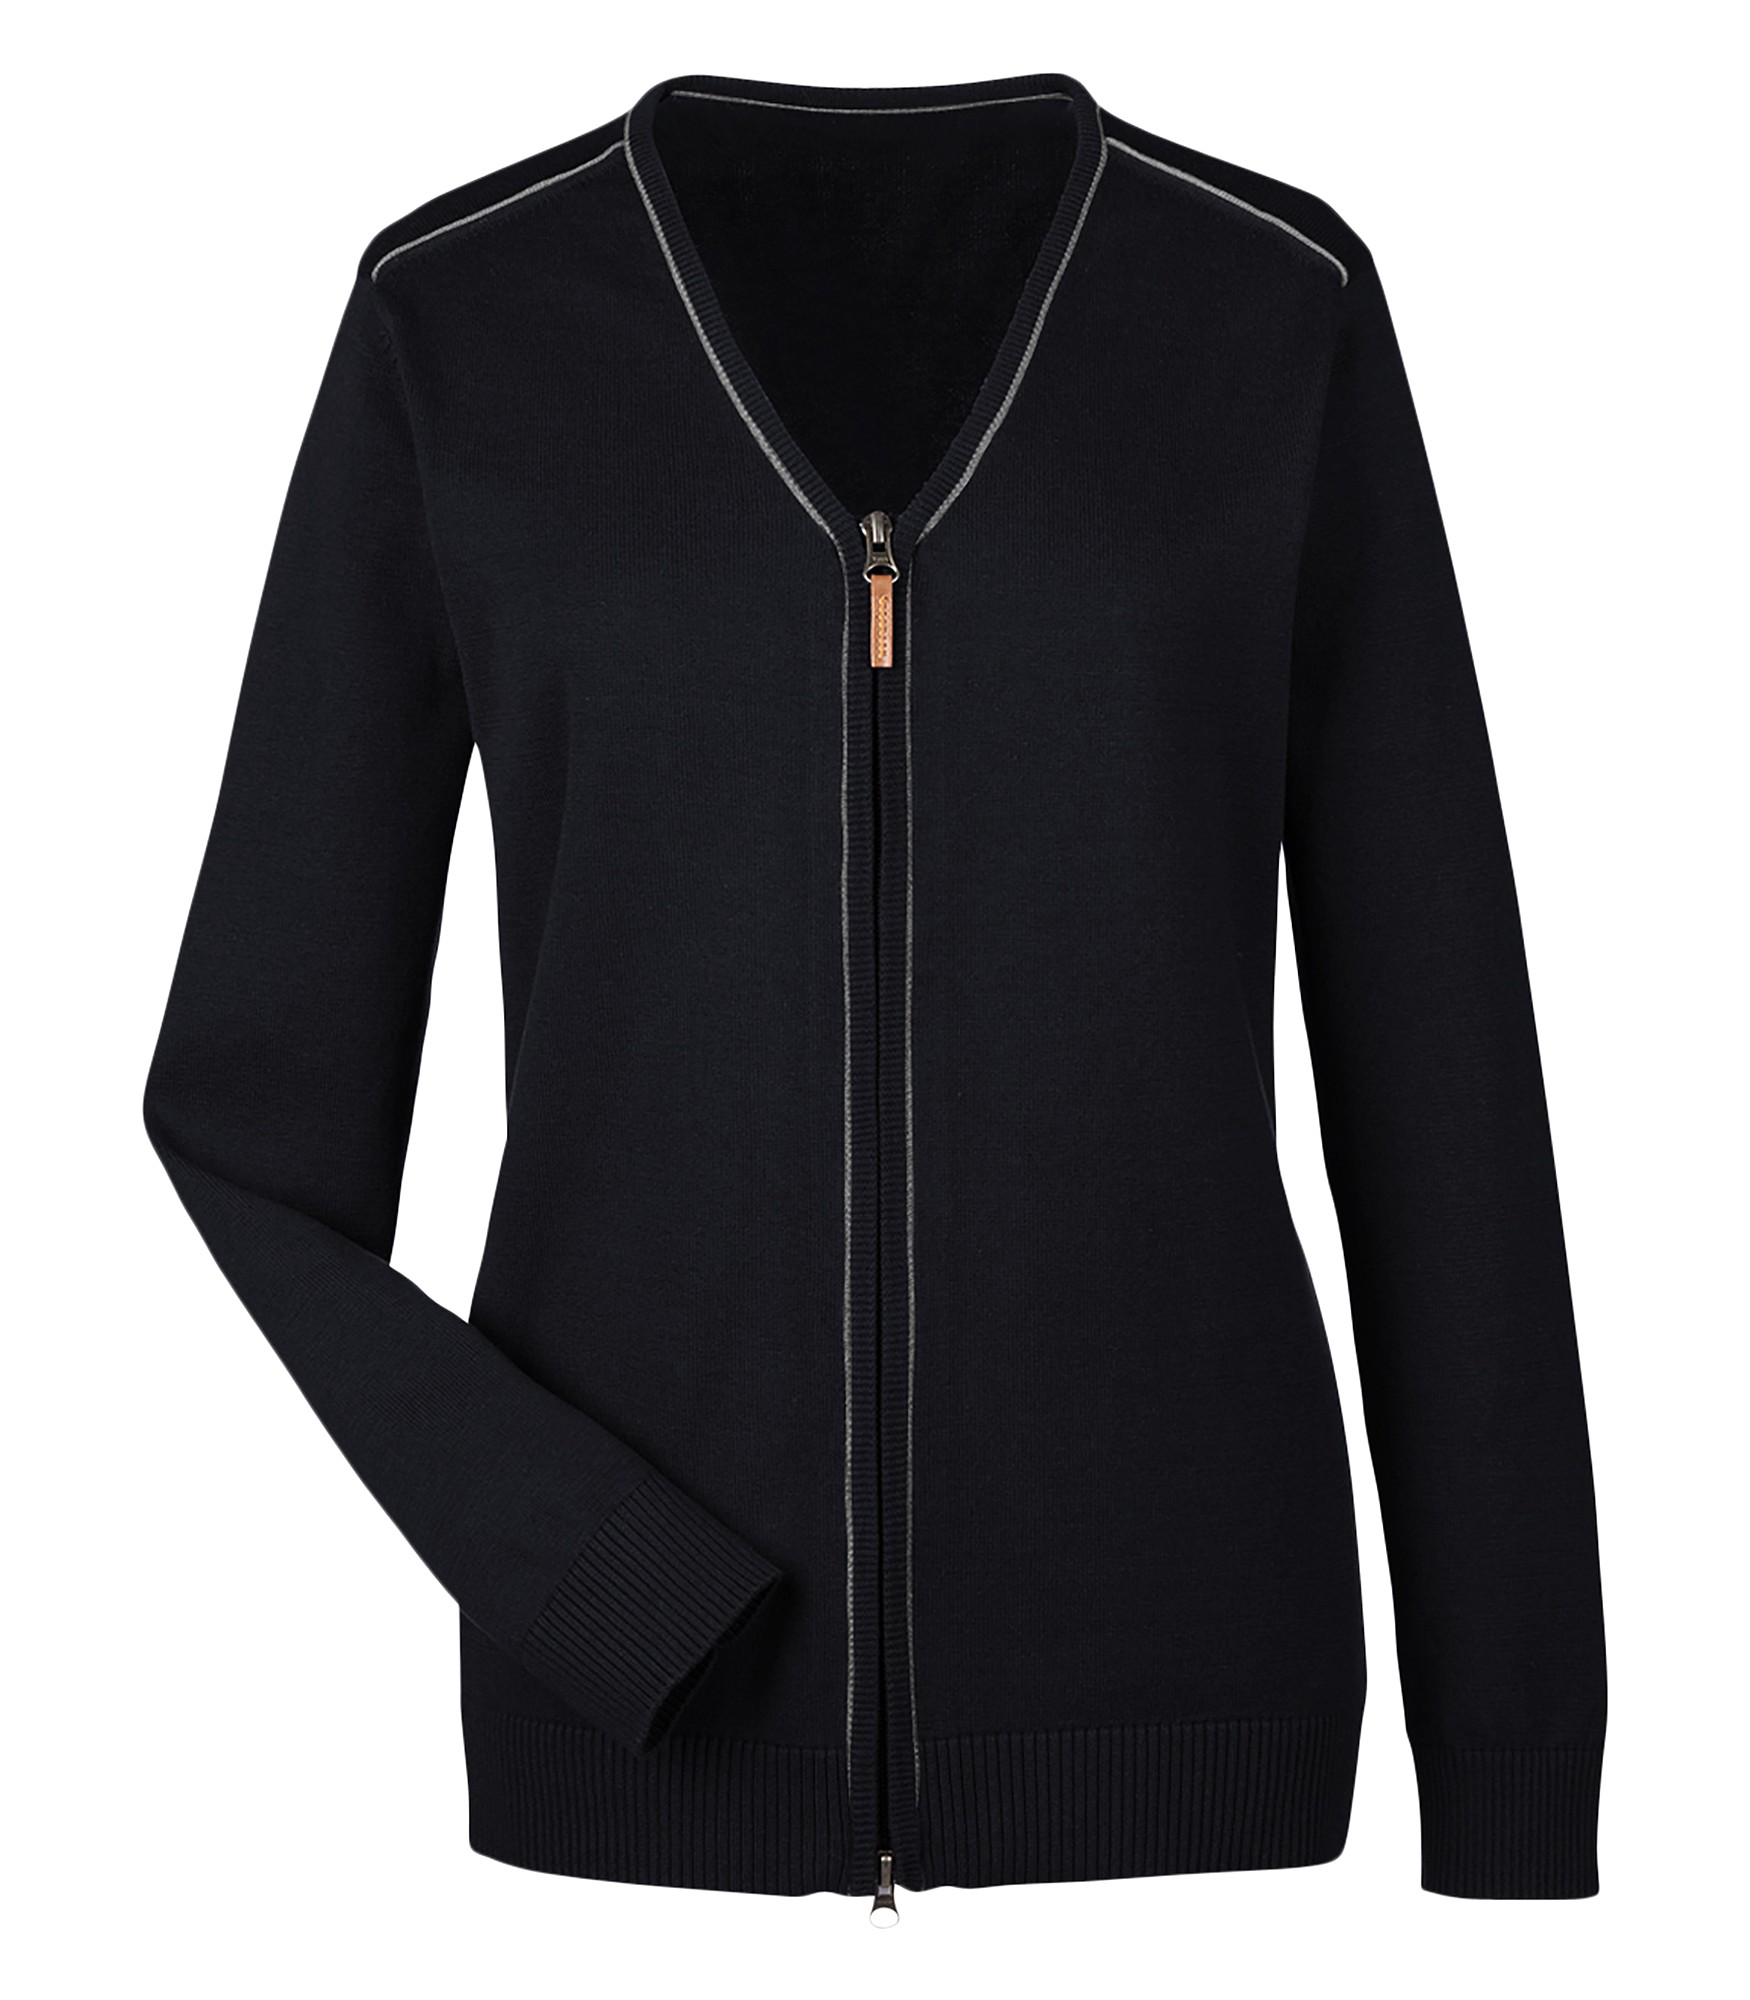 9d9655bda8 ... Devon   Jones® Manchester Ladies Fully Fashioned Full-Zip Sweater.  Zoom. Loading zoom